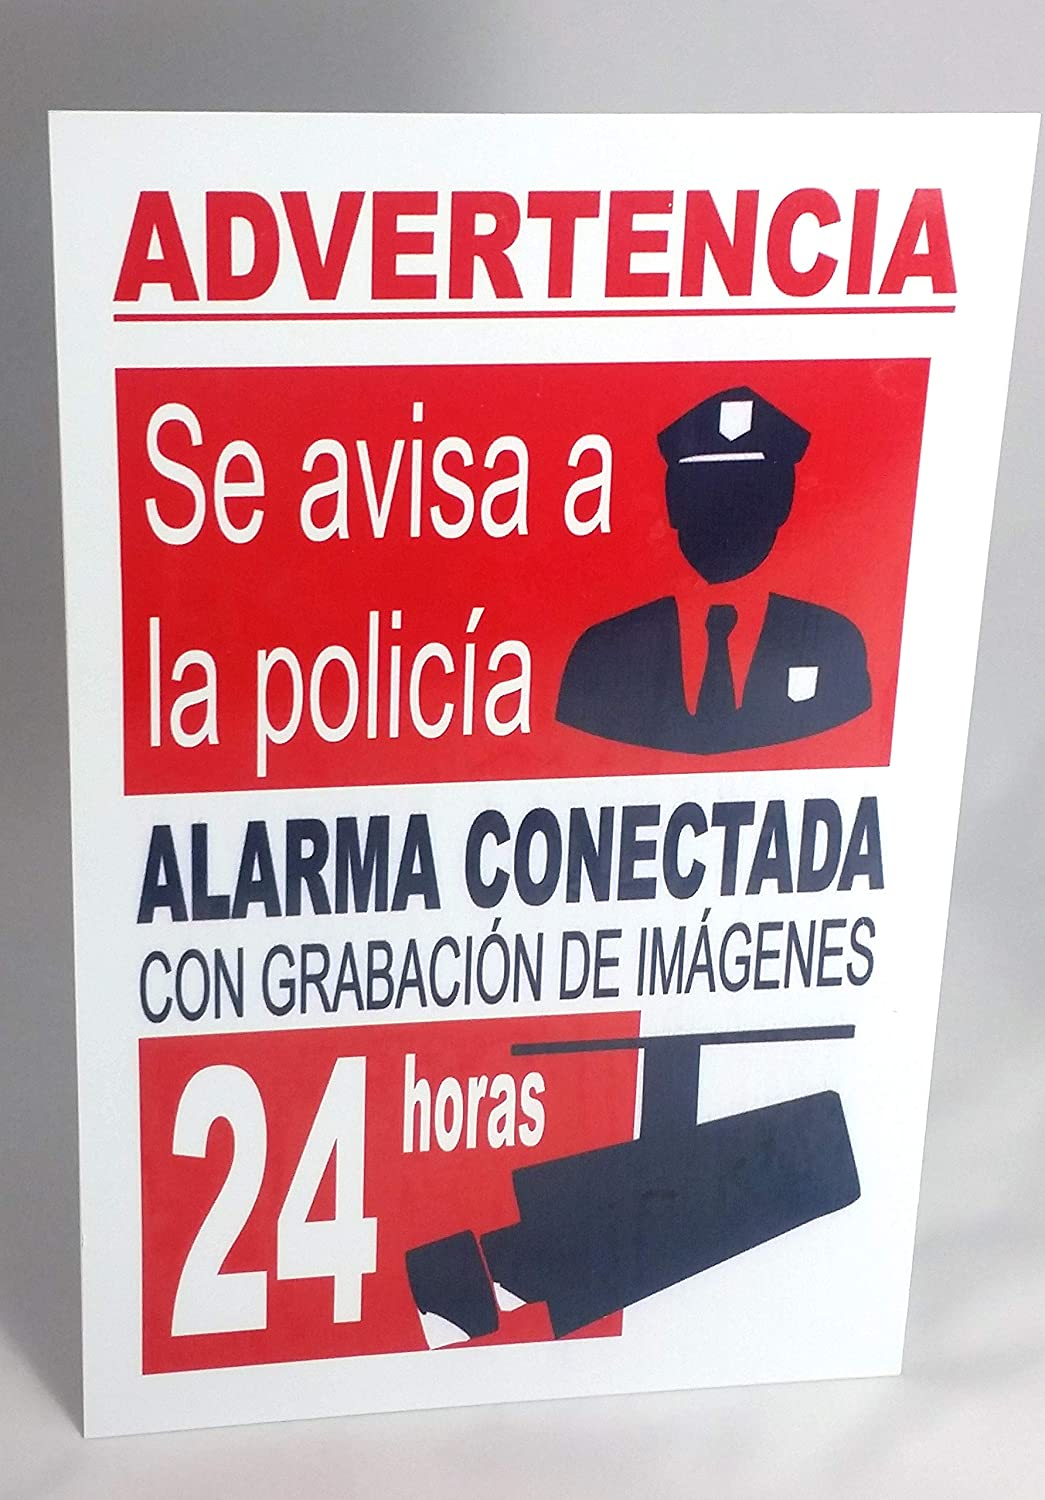 Marina Signboards Cartel Metal 30x20 cm Advertencia Alarma ...